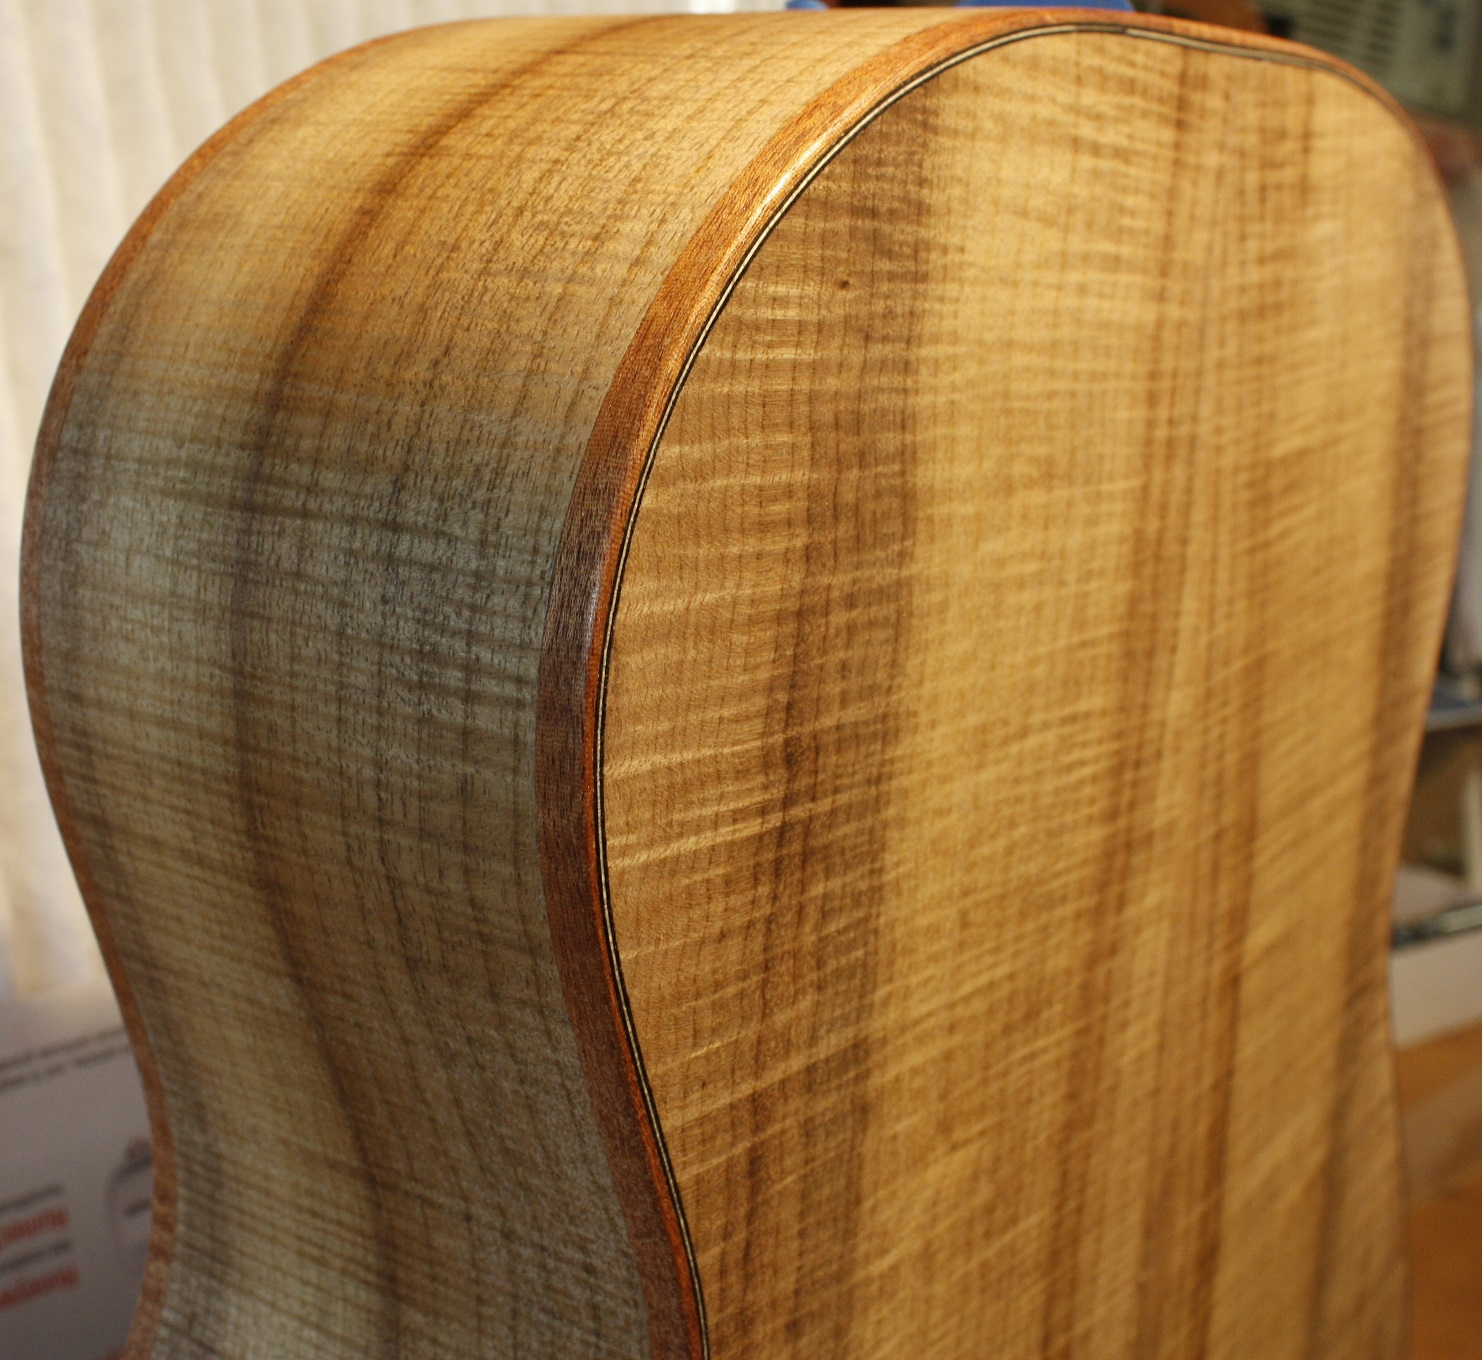 This view of the body was taken after applying two coats of Shellac sealer.